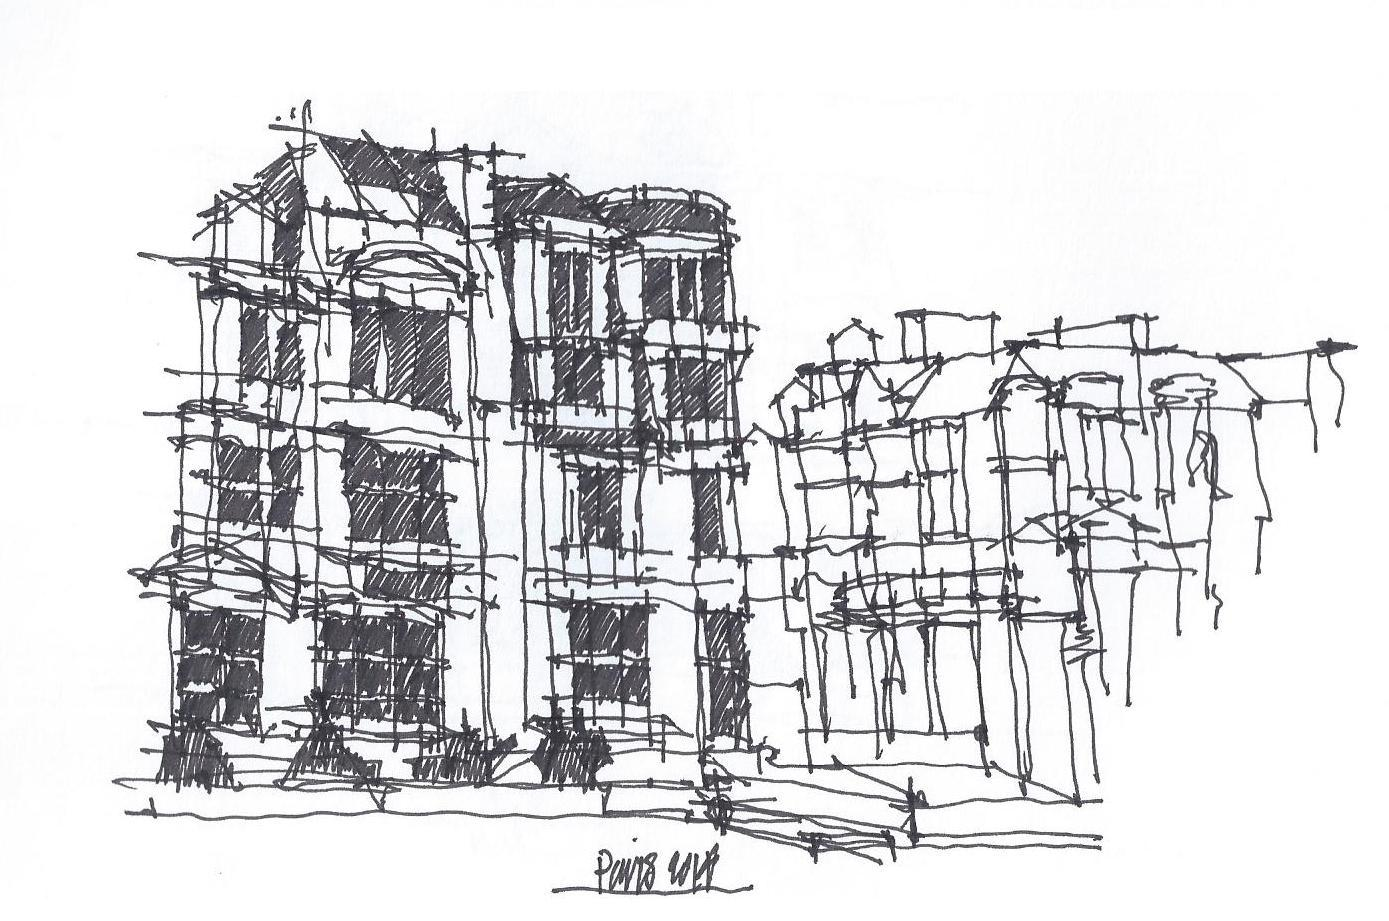 Another really quick sketch as I was standing outside waiting to get into the Musee D'Orsay, Paris, Nov., 2014